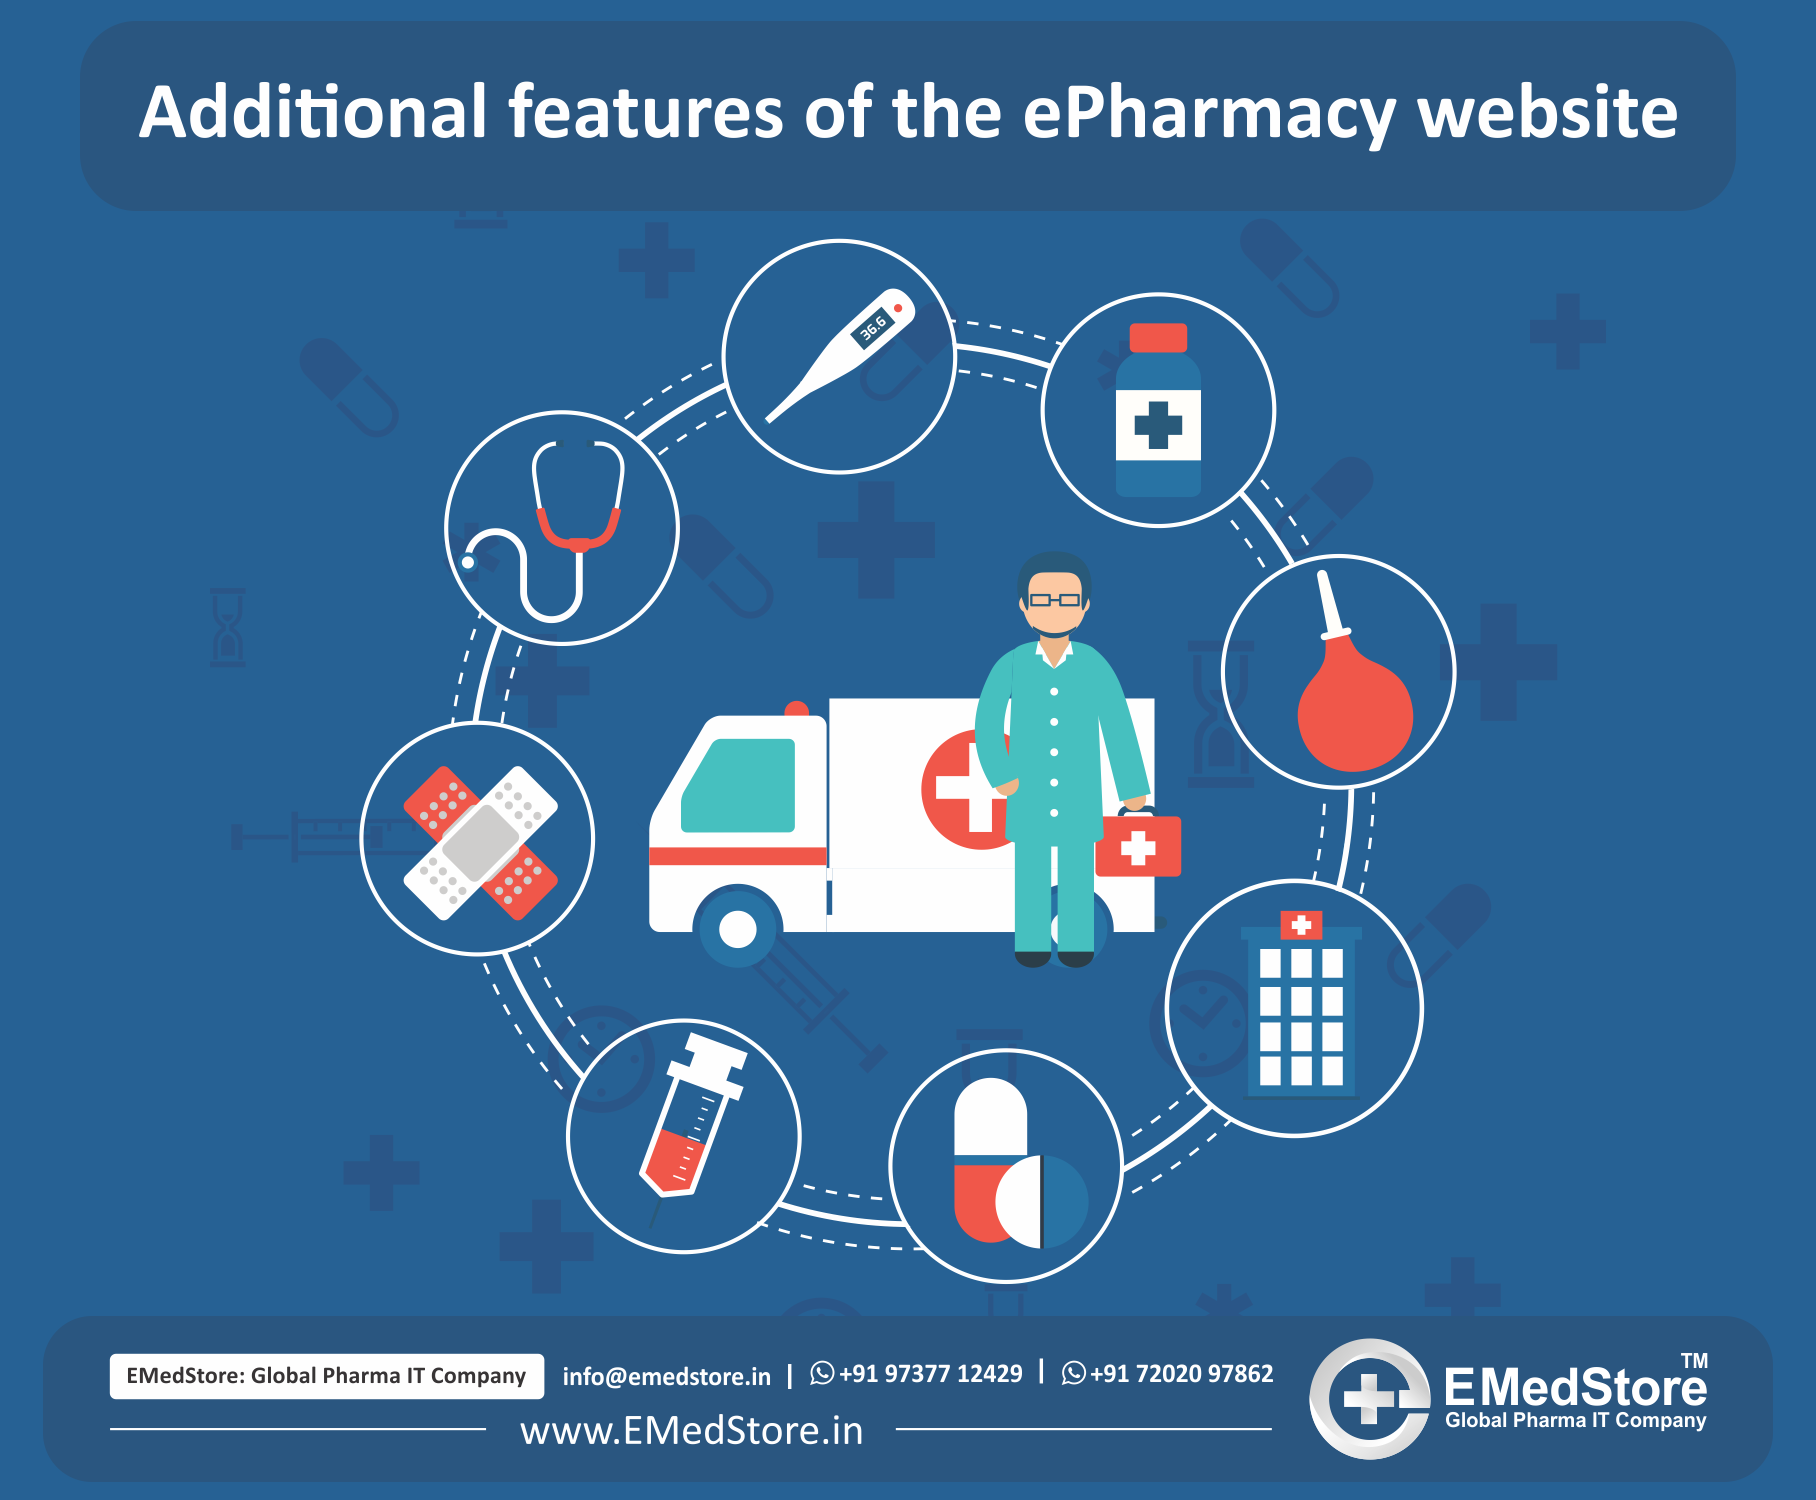 Additional features of the ePharmacy website